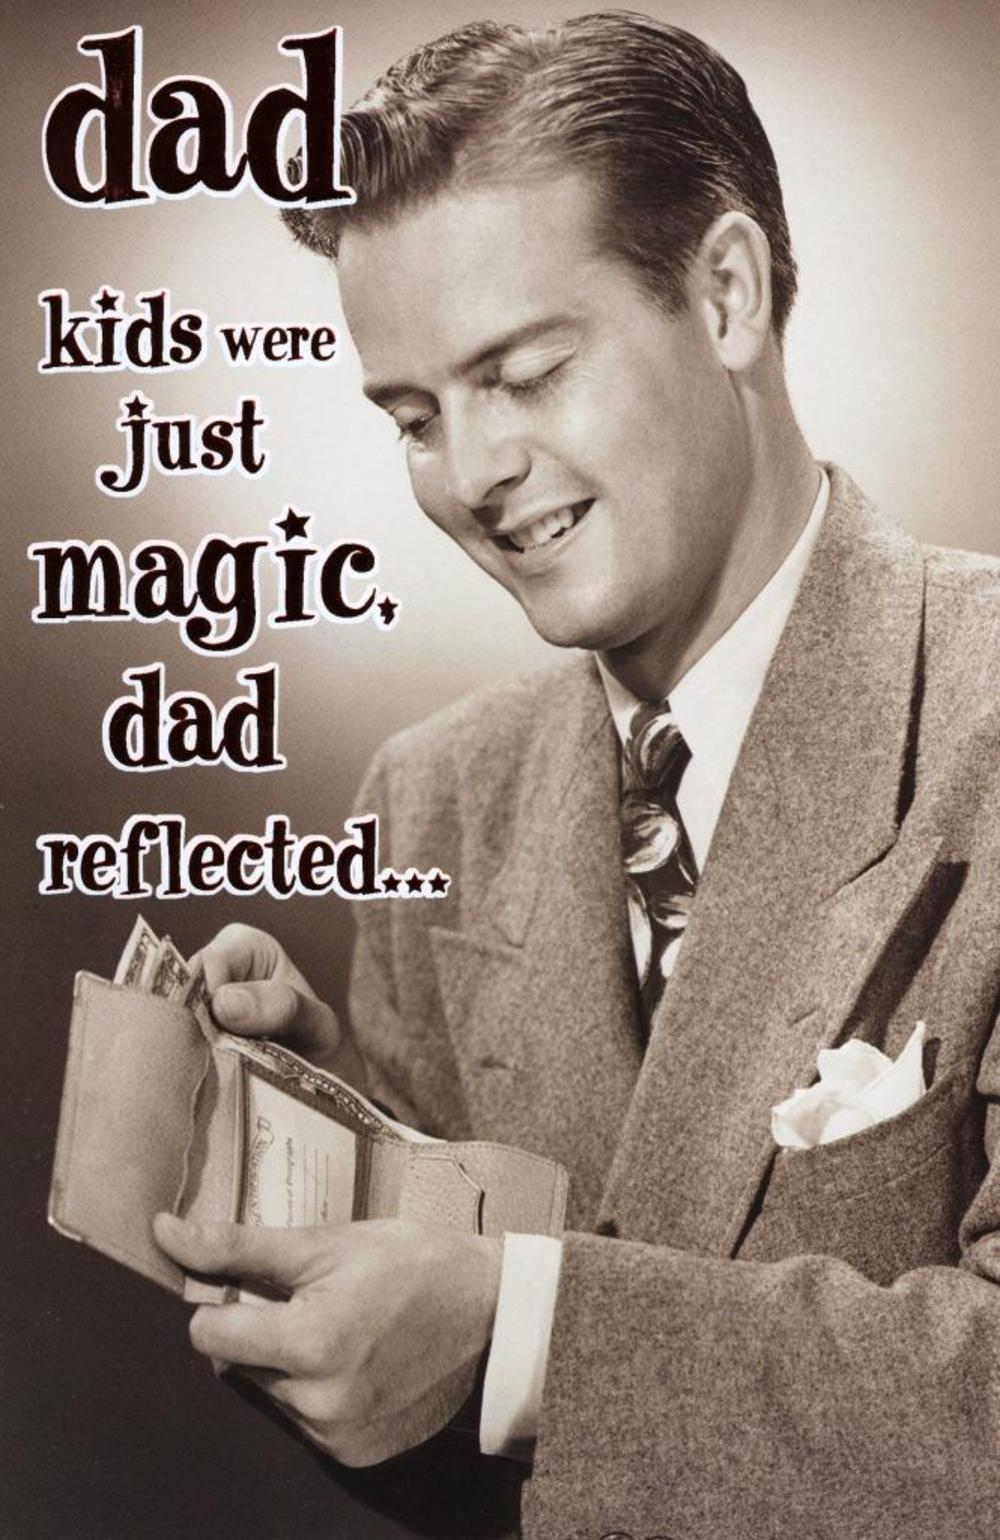 Funny Kids Make Money Disappear Retro Father's Day Card